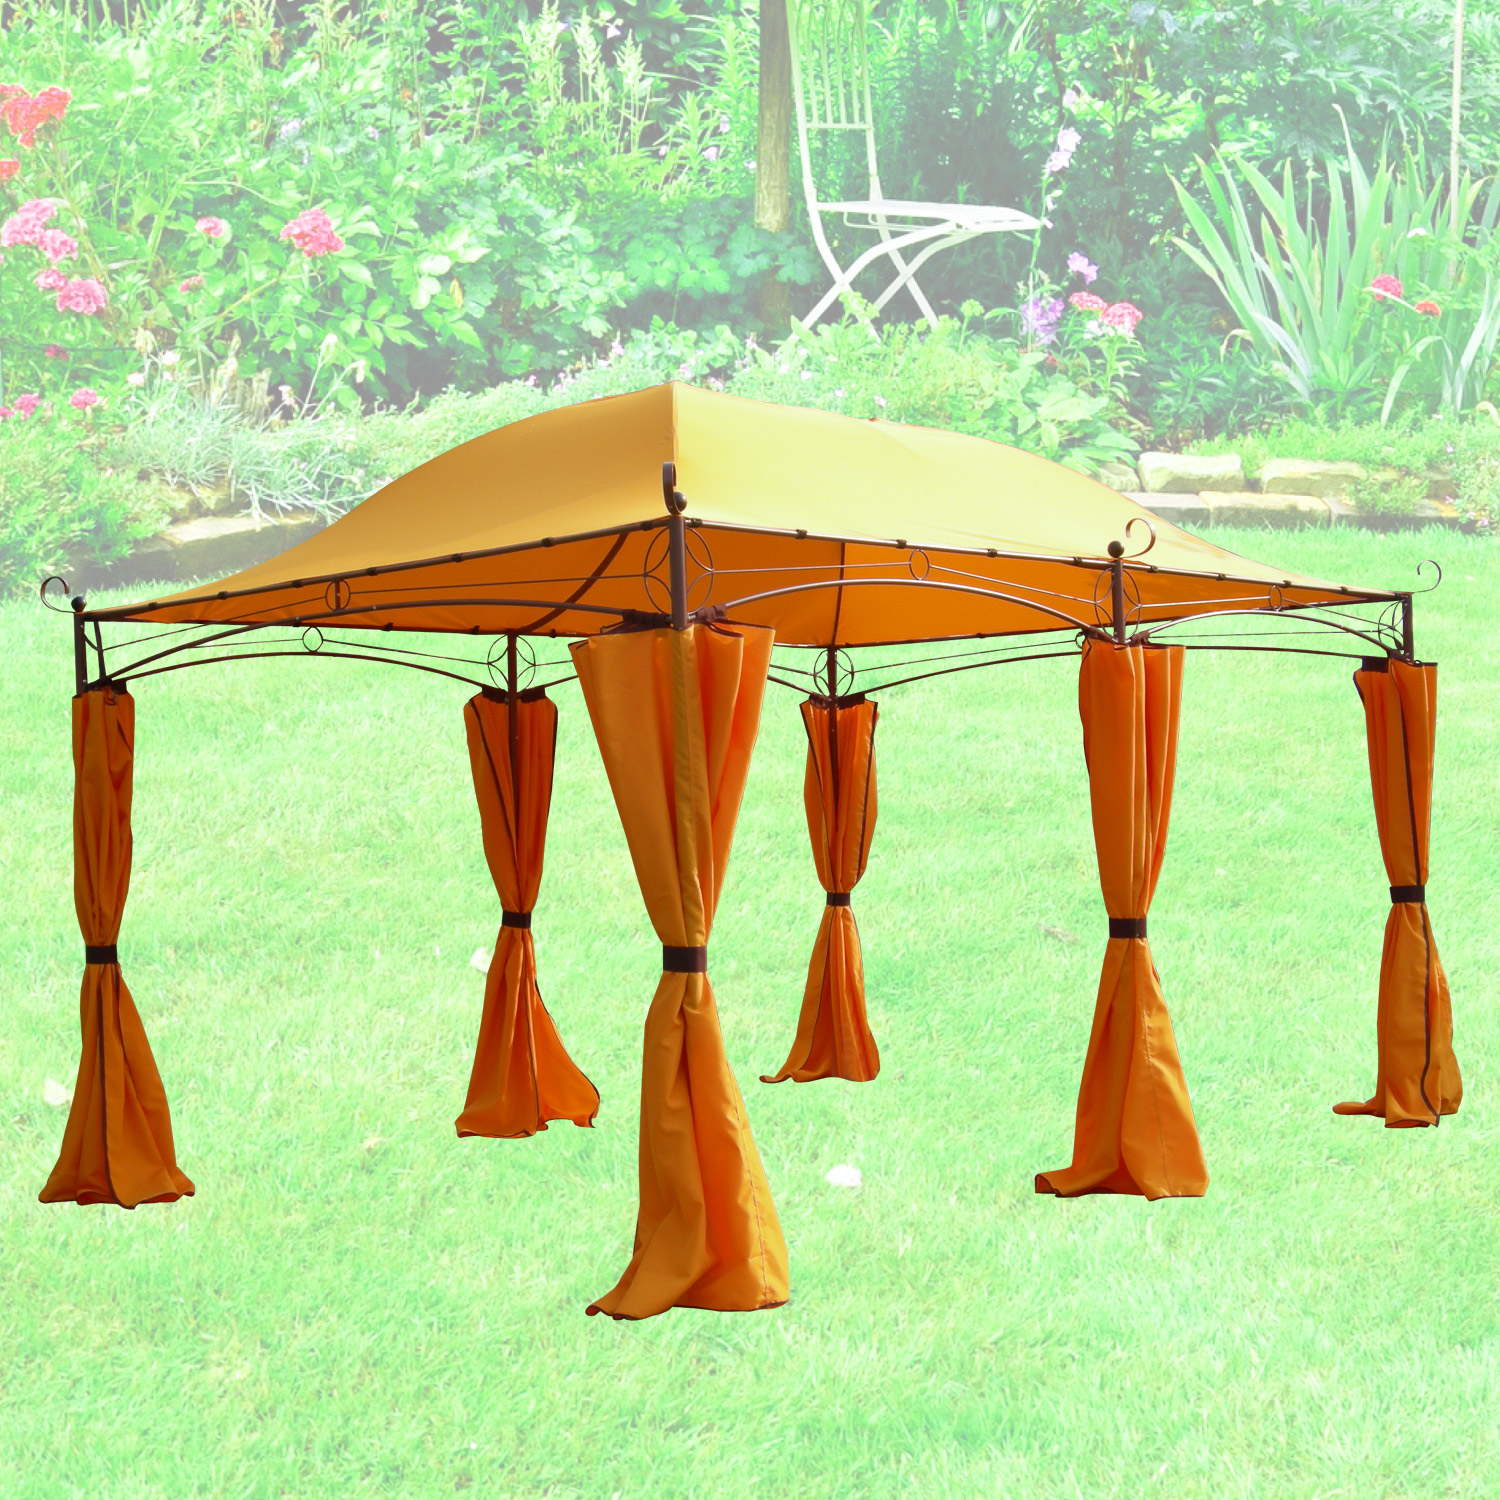 terena metall gartenpavillon 3x4 m gazebo garten pavillon belissimo orange. Black Bedroom Furniture Sets. Home Design Ideas